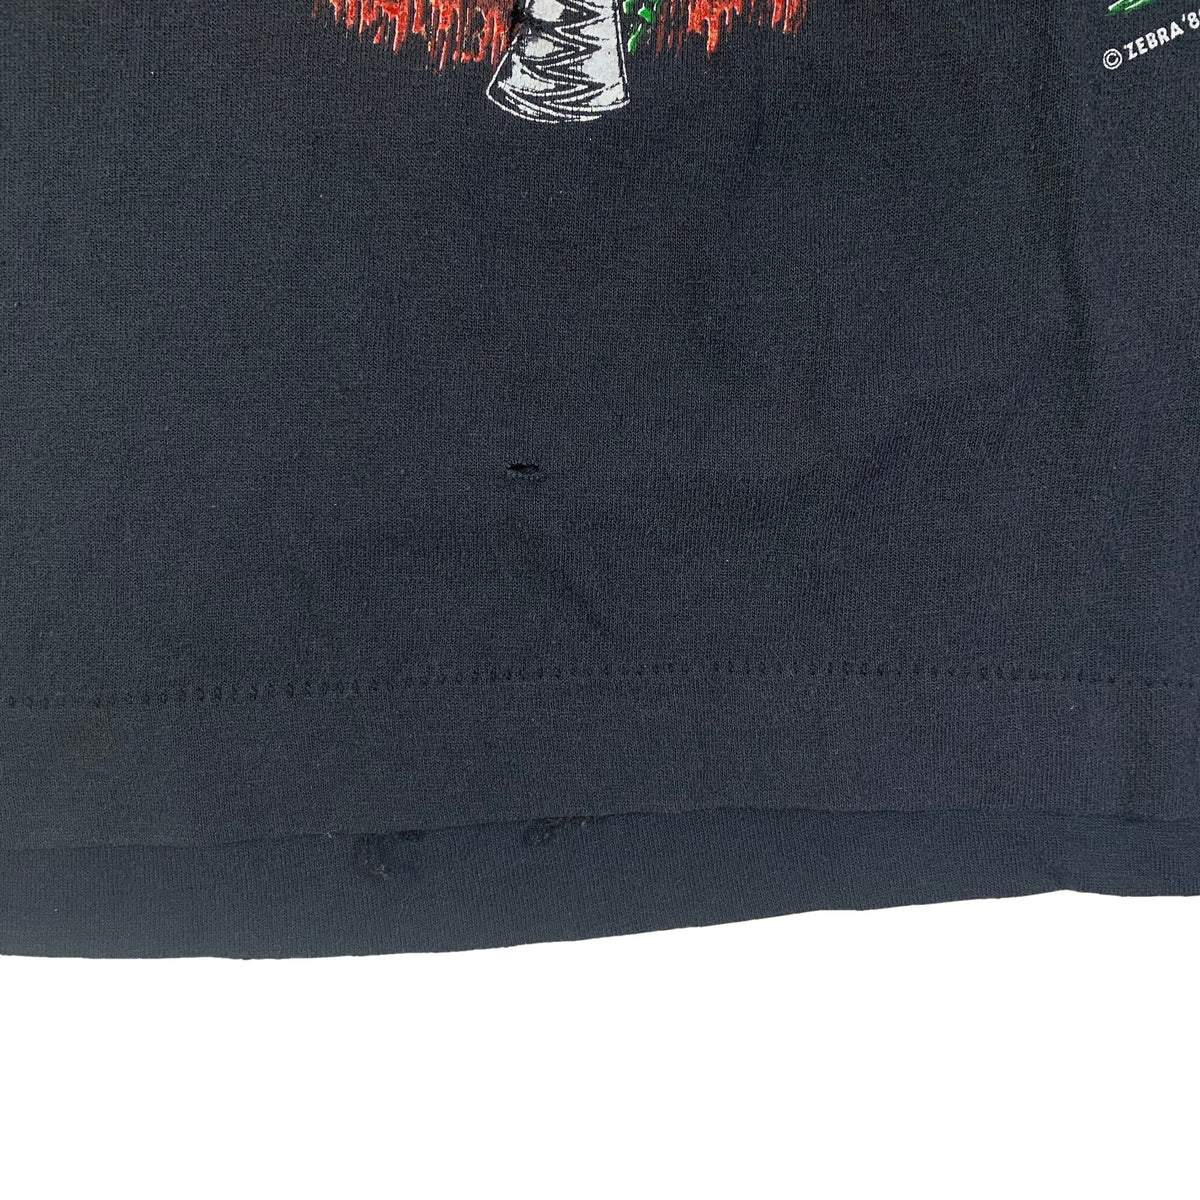 "Vintage Dark Angel ""Leave Scars"" Tour T-Shirt"